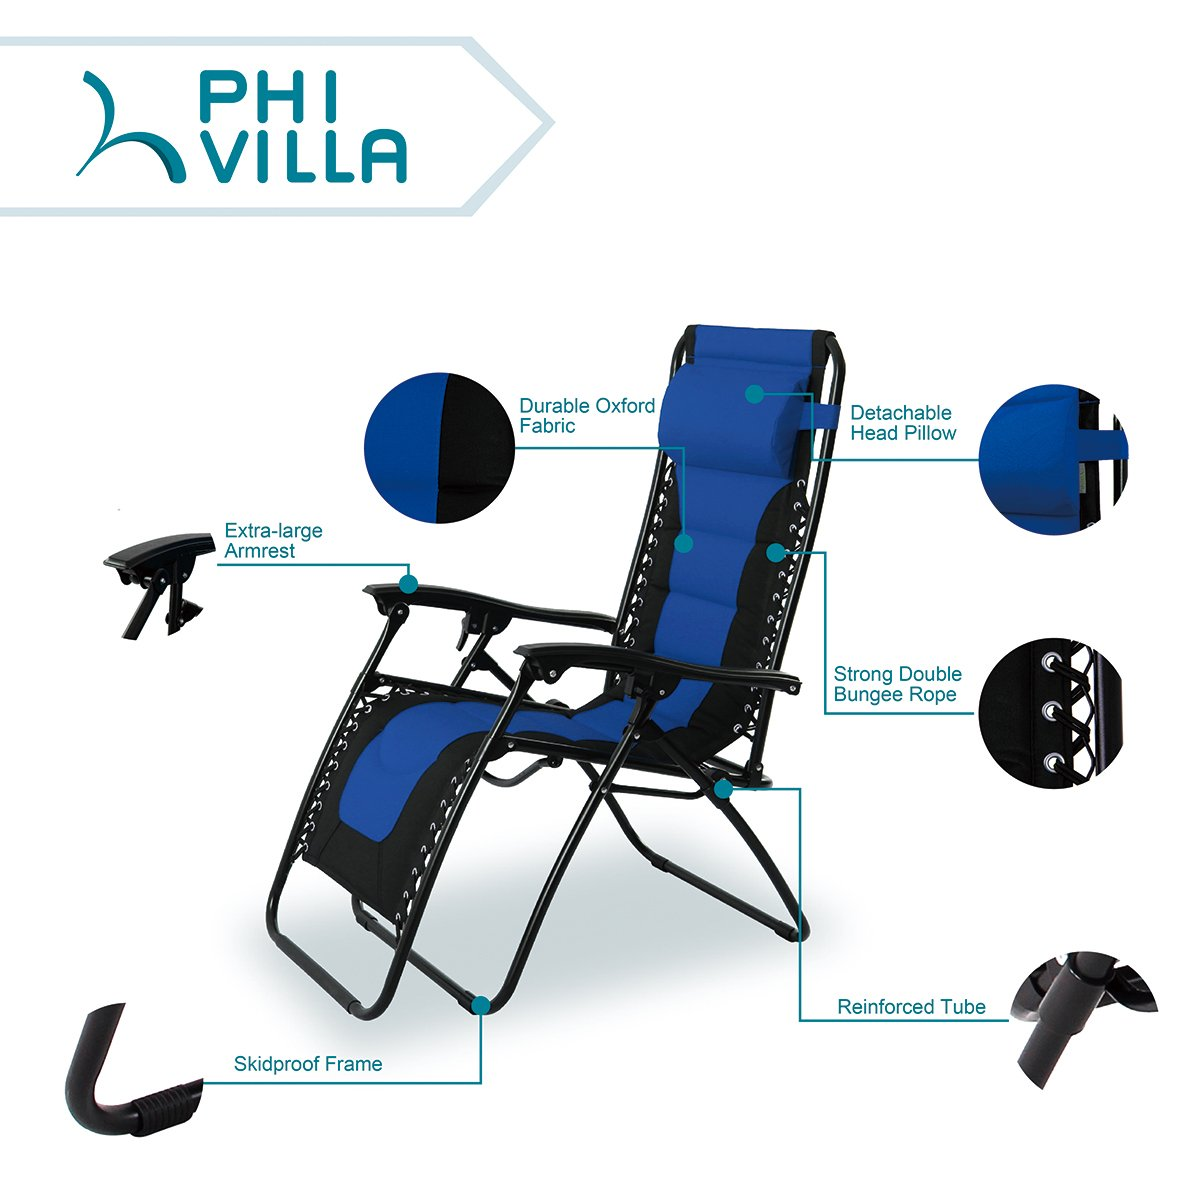 PHI VILLA Padded Zero Gravity Patio Lounge Chairs Adjustable Reclining with Cup Holders, 2 Pack Blue